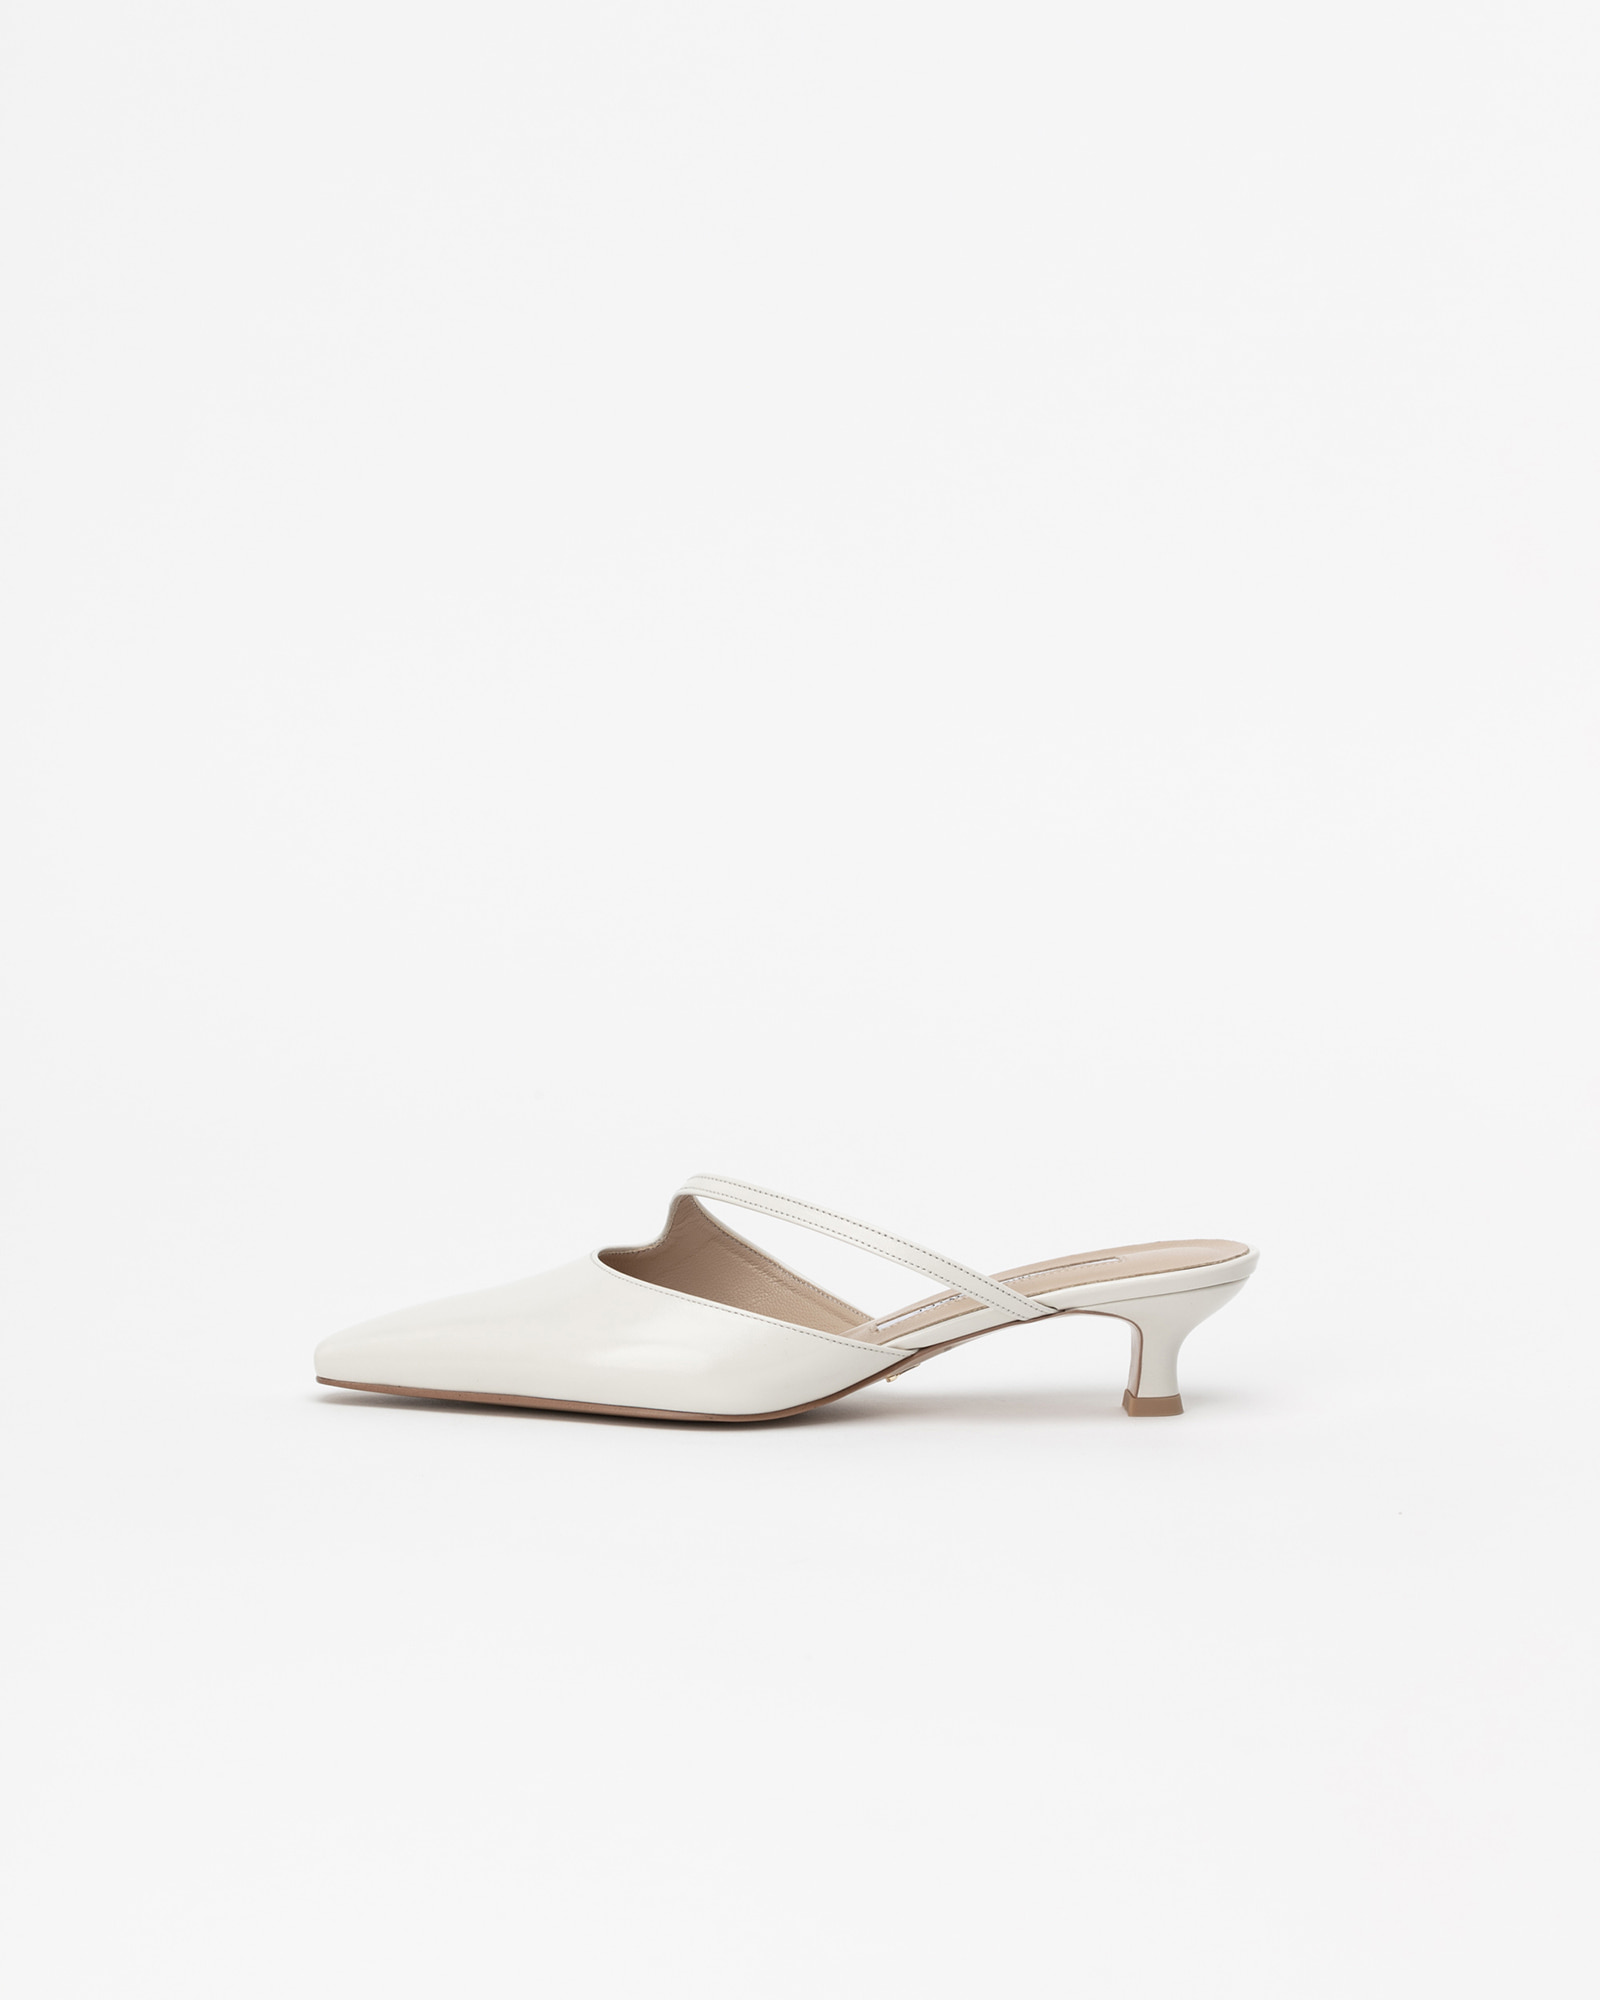 Serenade Mules in Textured Ivory